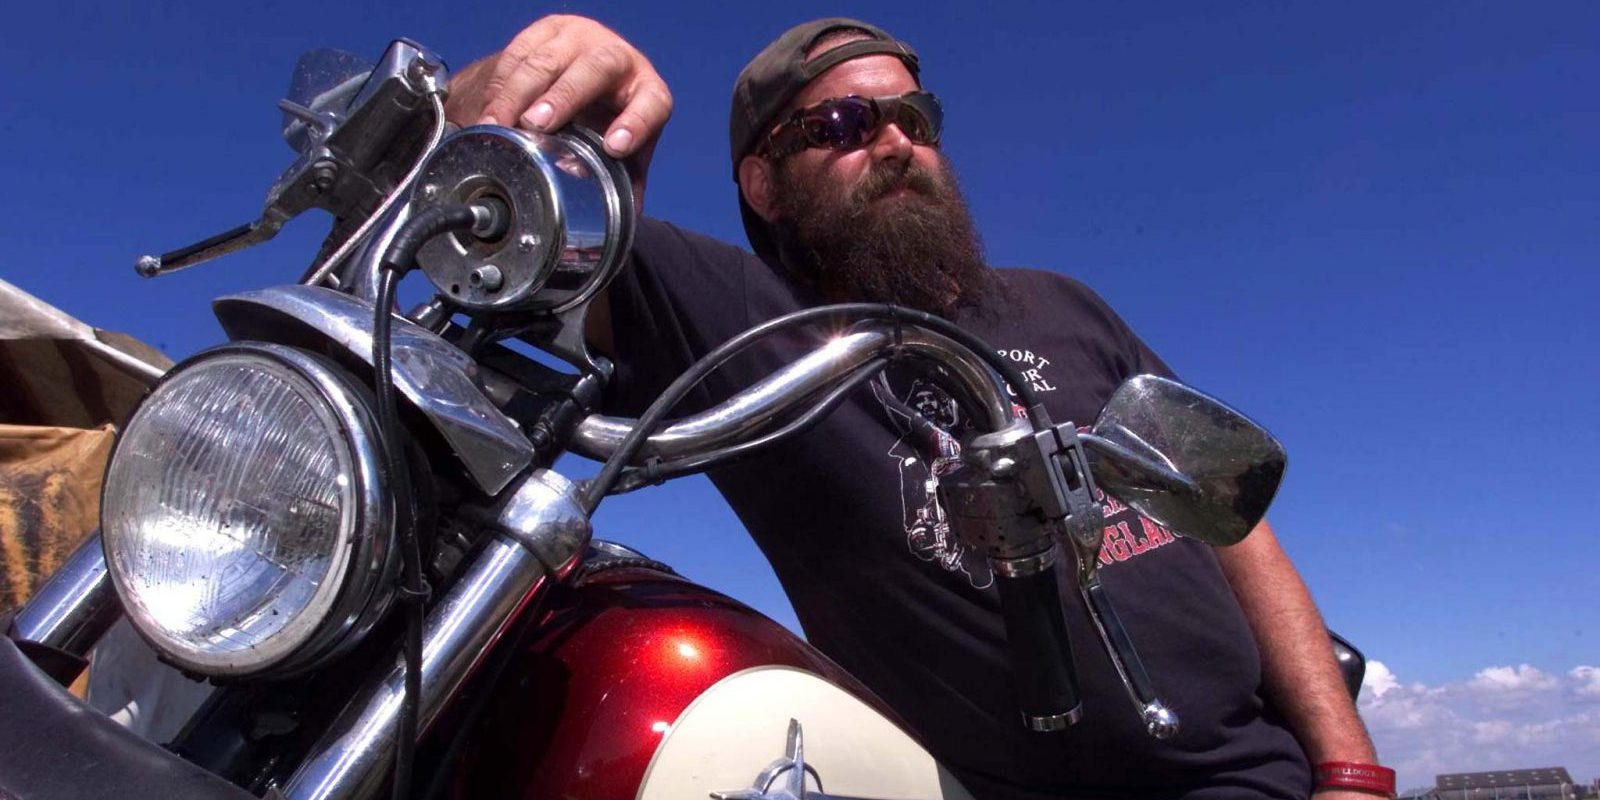 A Hells Angel biker leans on his Harley Davidson at The Bulldog Bash at Long Marston airfield in Warwickshire August 5.